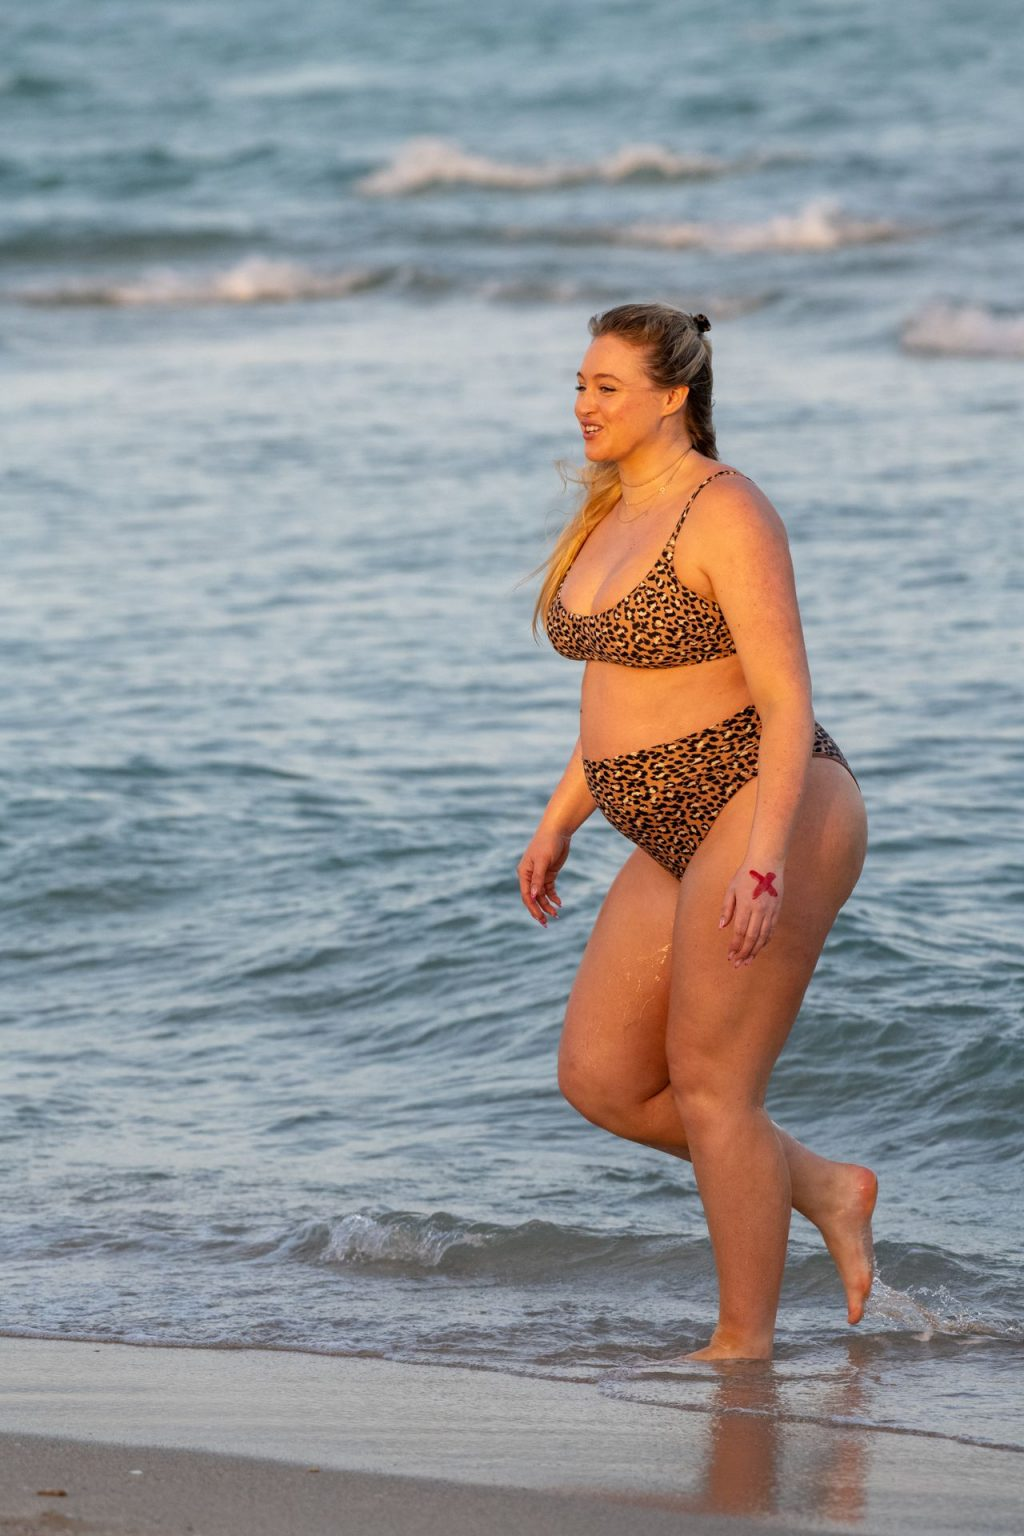 Iskra Lawrence Sexy The Fappening Blog 21 1024x1536 - Heavily Pregnant Model Iskra Lawrence Takes A Sunset Dip In Miami Beach (44 Photos)